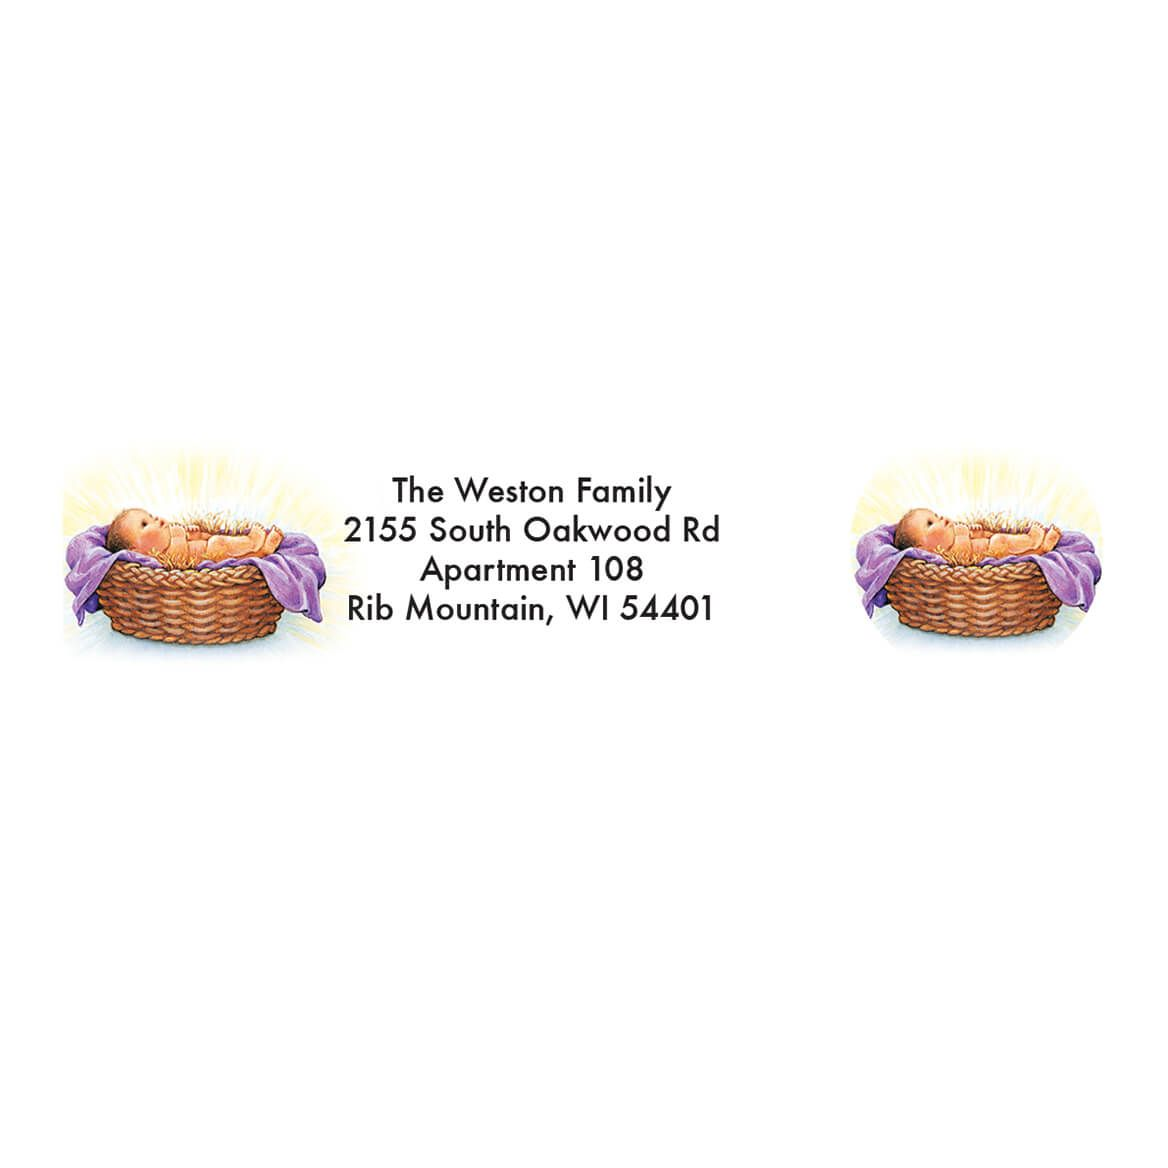 Personalized Share the Love of Jesus Labels & Envelope Seals 20-364759